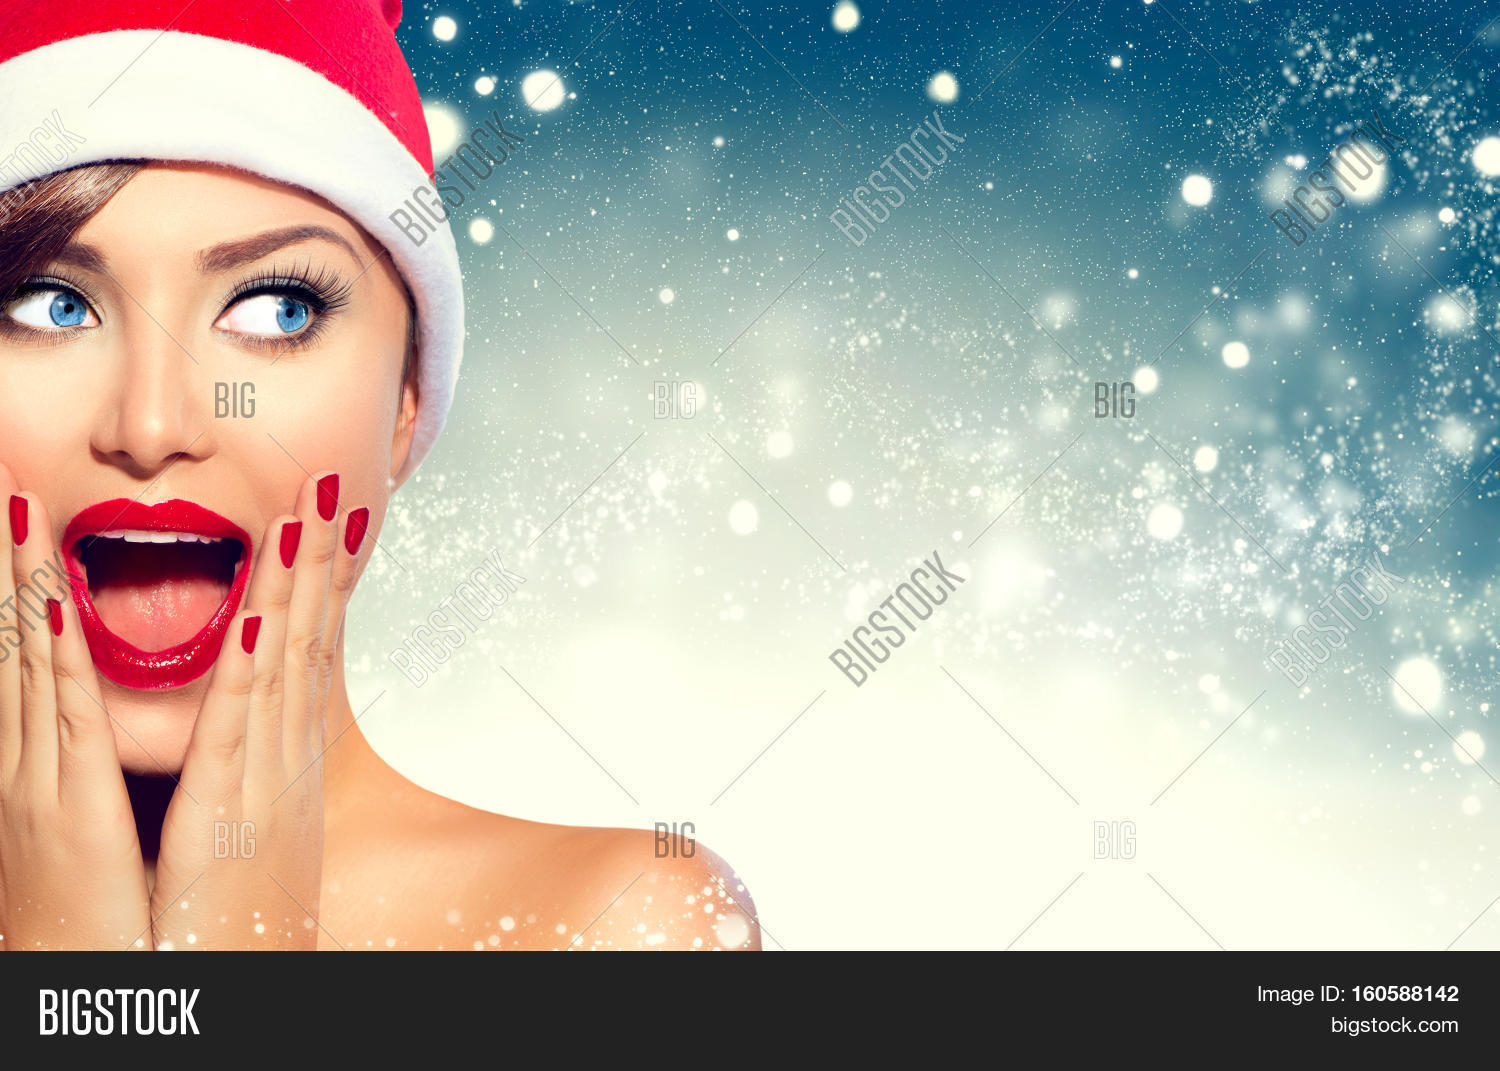 ce1f6a2c20104 Christmas Girl. Beauty model woman in Santa Claus hat with red lips and  manicure looking